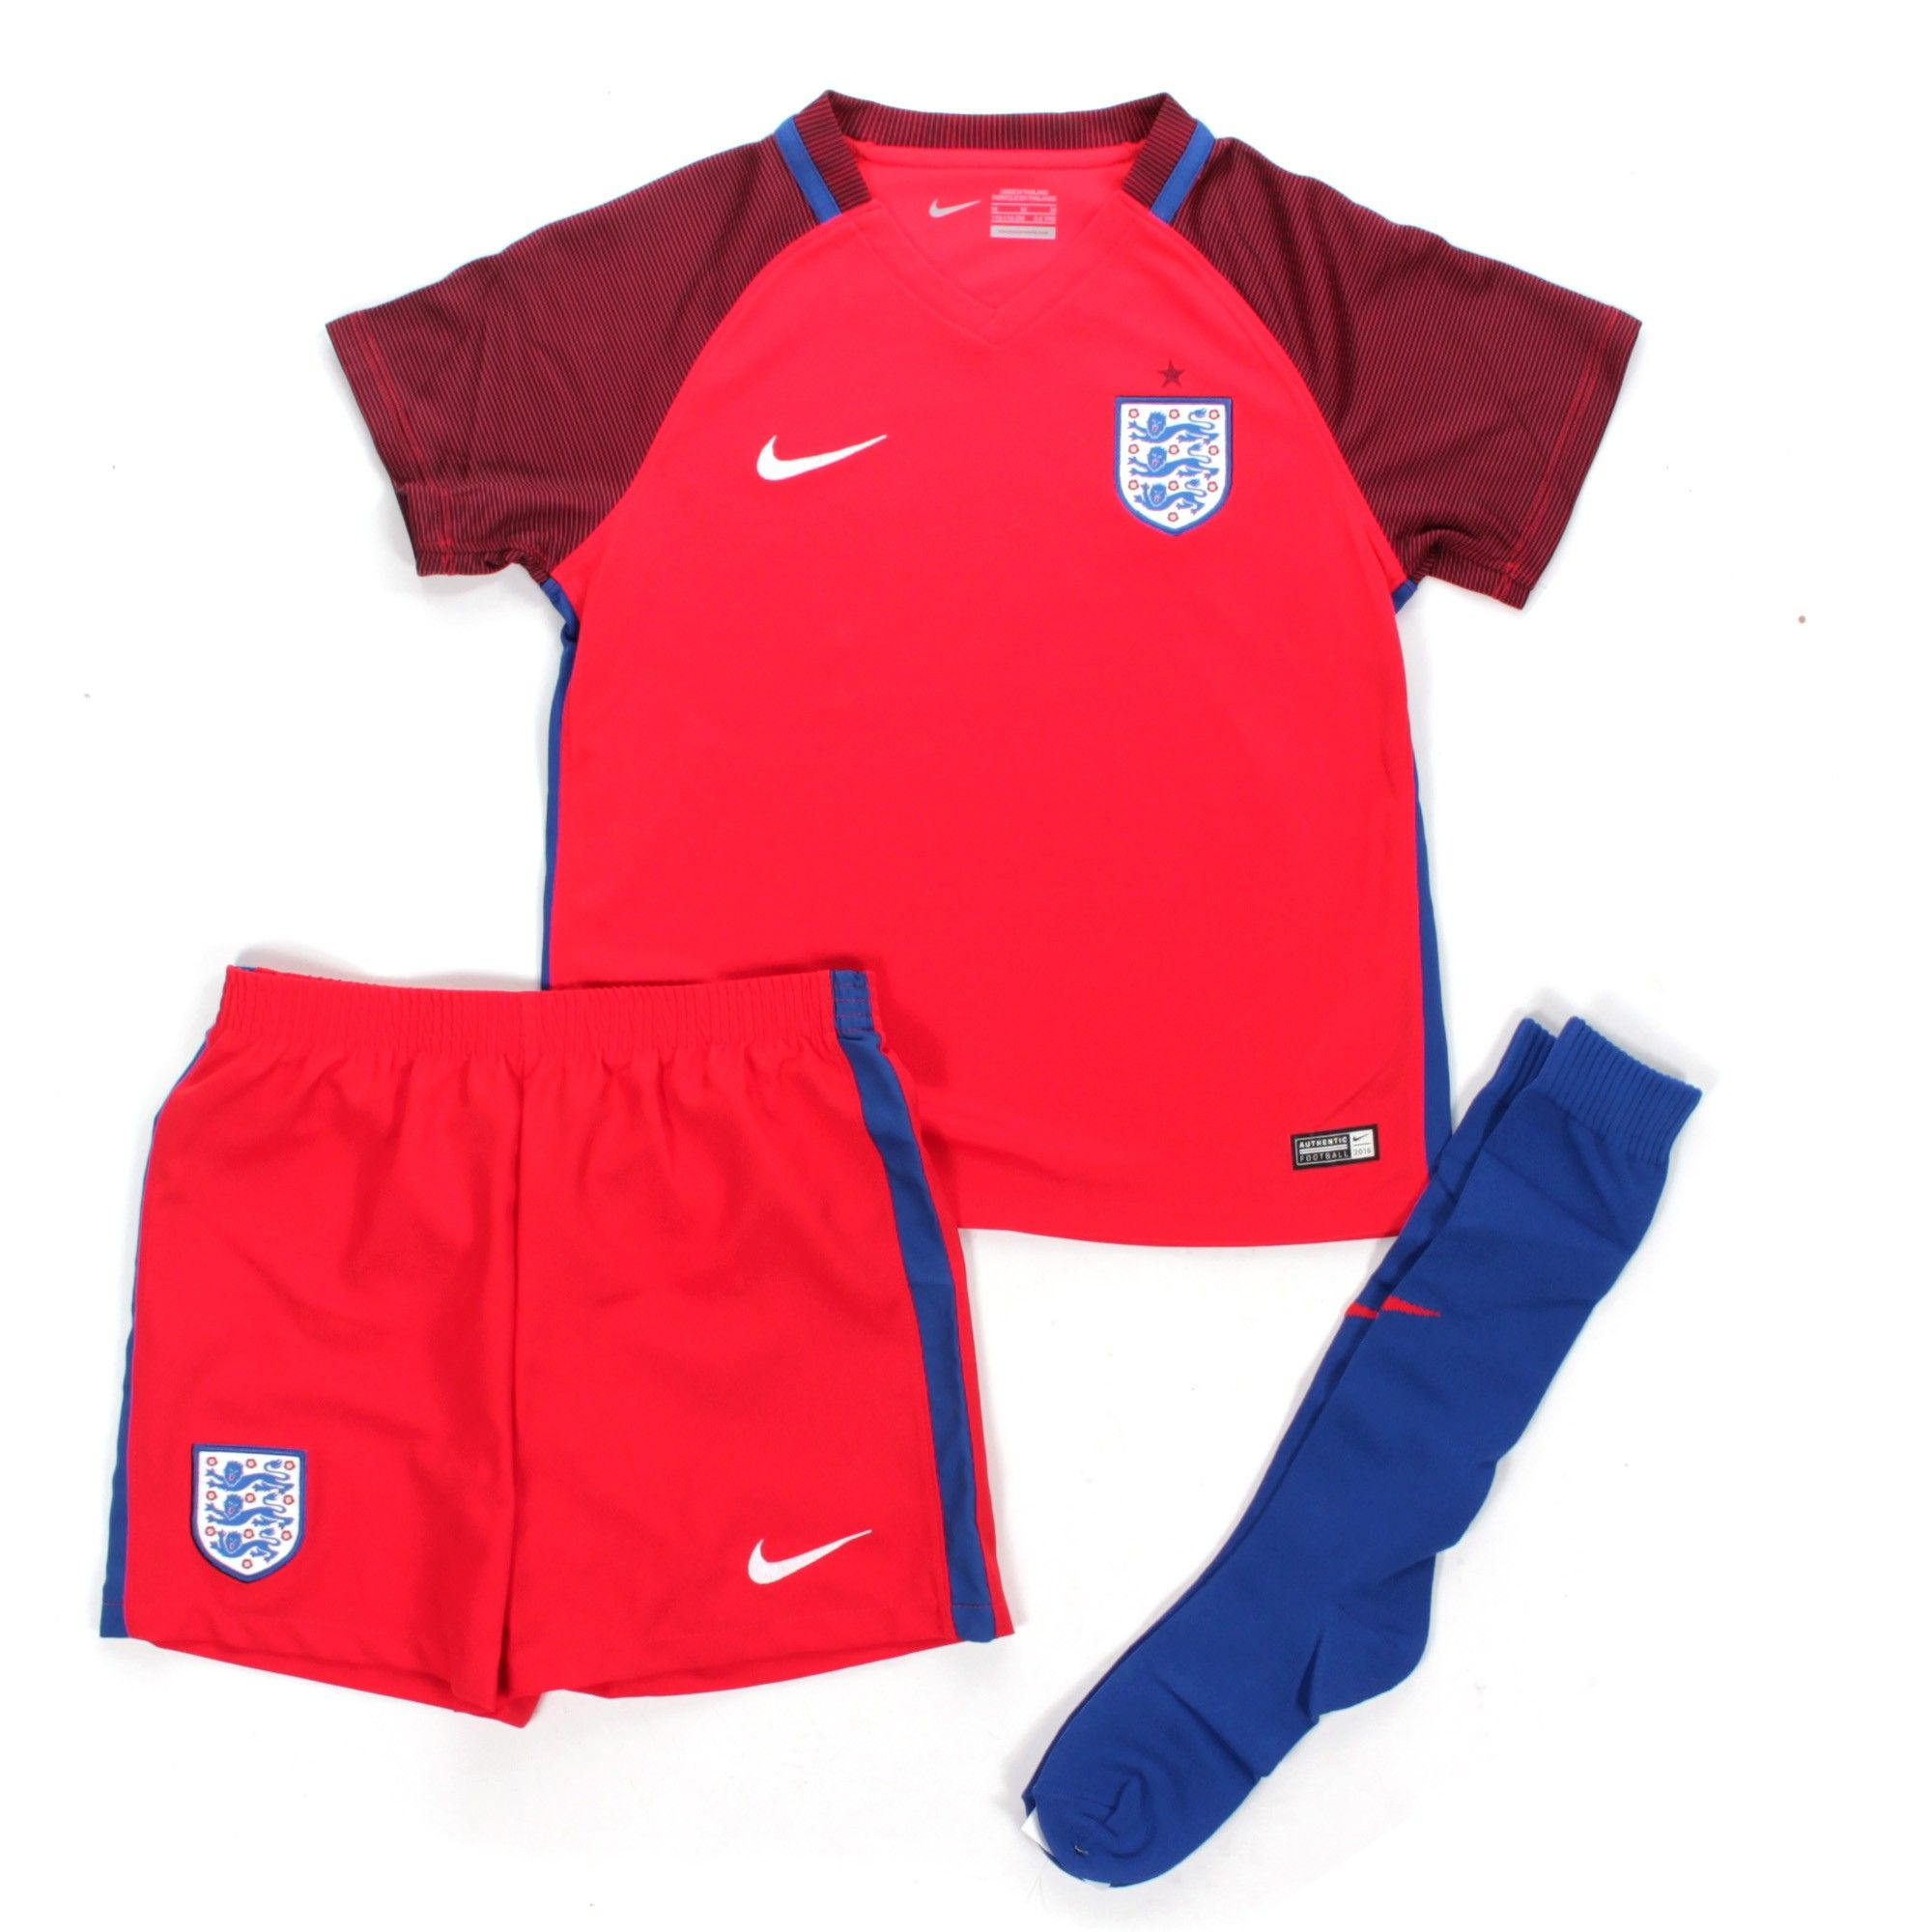 88d9a206a1e Support England with style with the official England 2016 17 Away Little  Kids Stadium Kit